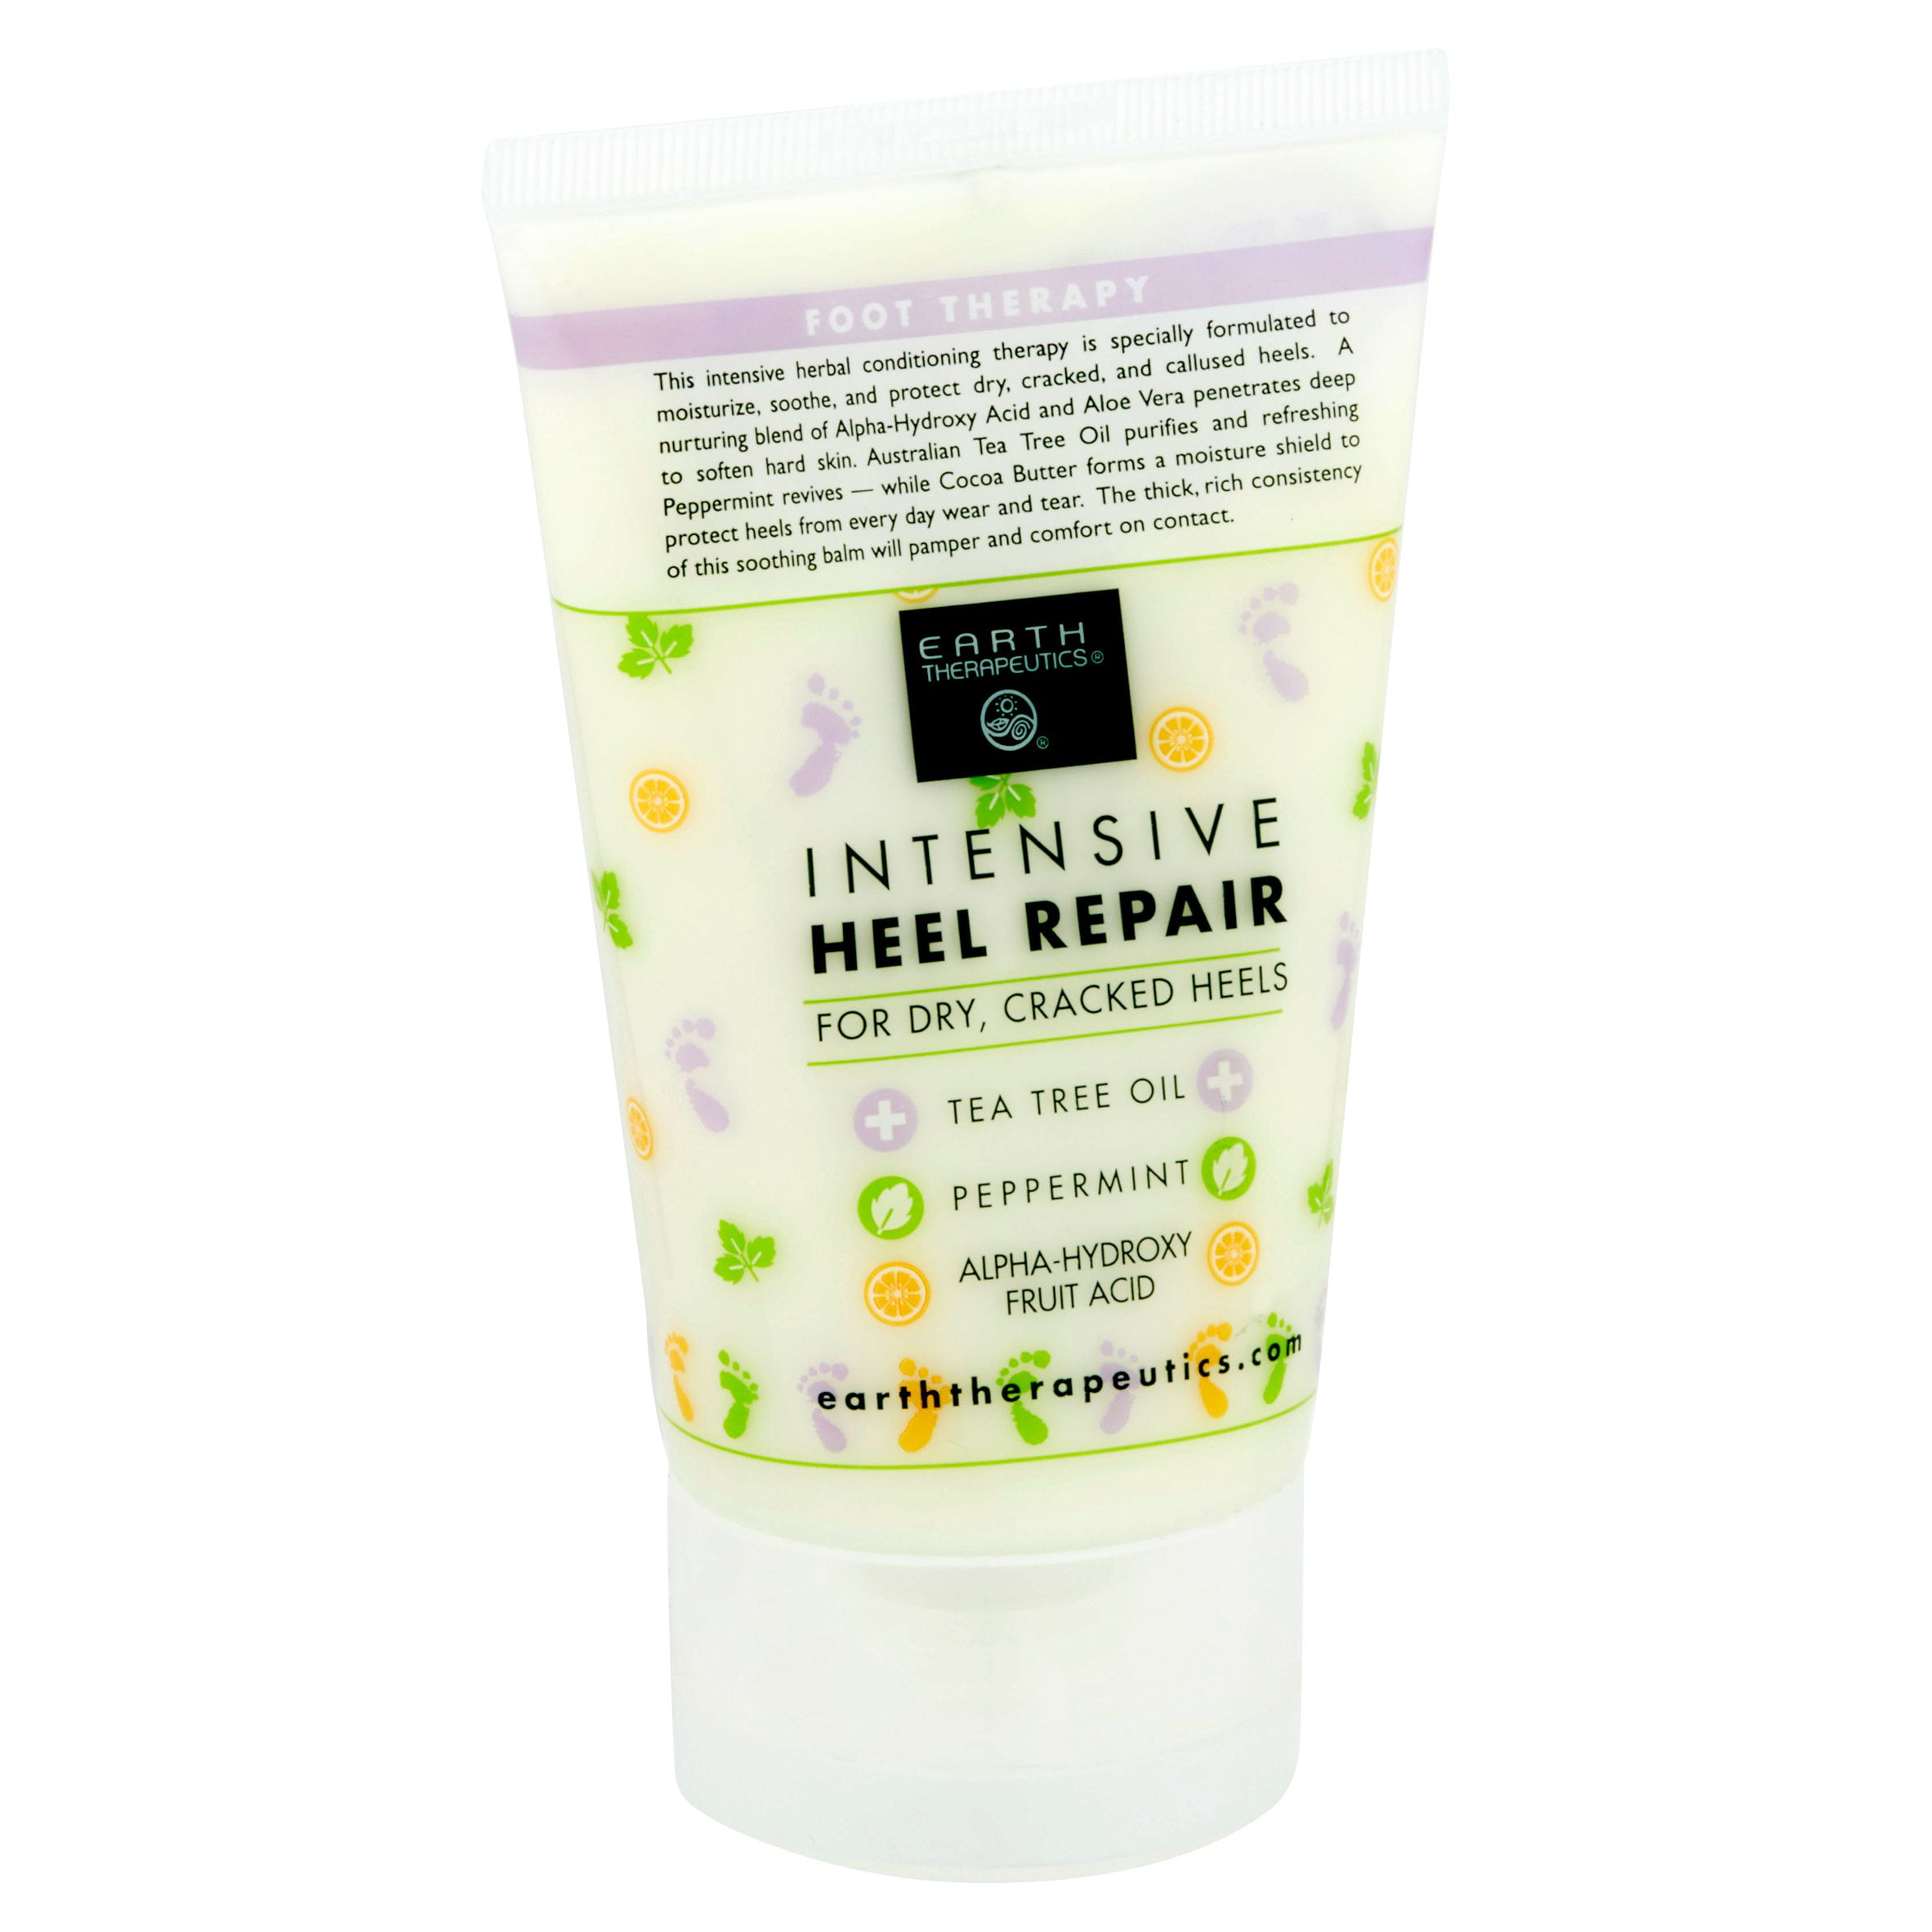 Cooling Foot Scrub by earth therapeutics #3